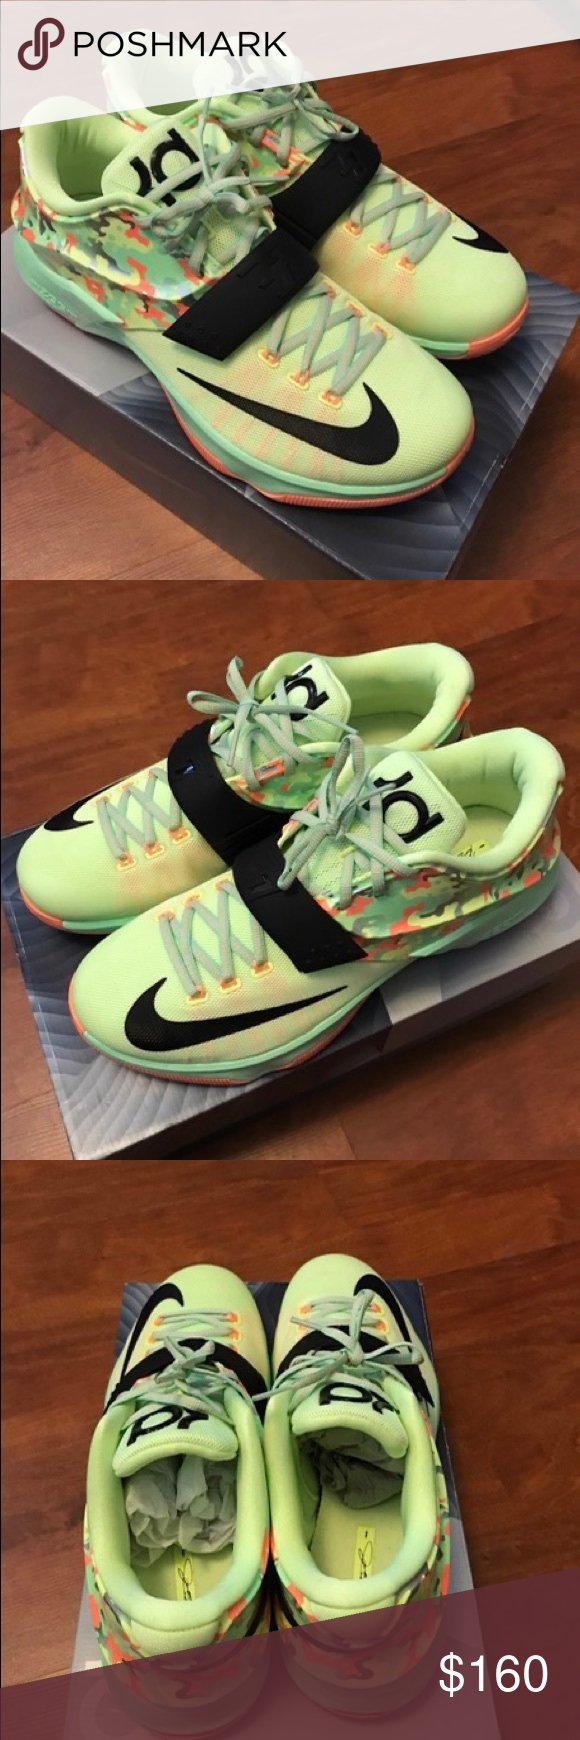 e20819c86593 Mans Nike KD 7 Easter Brand new Nike KD 7 Easter Nike Shoes Sneakers